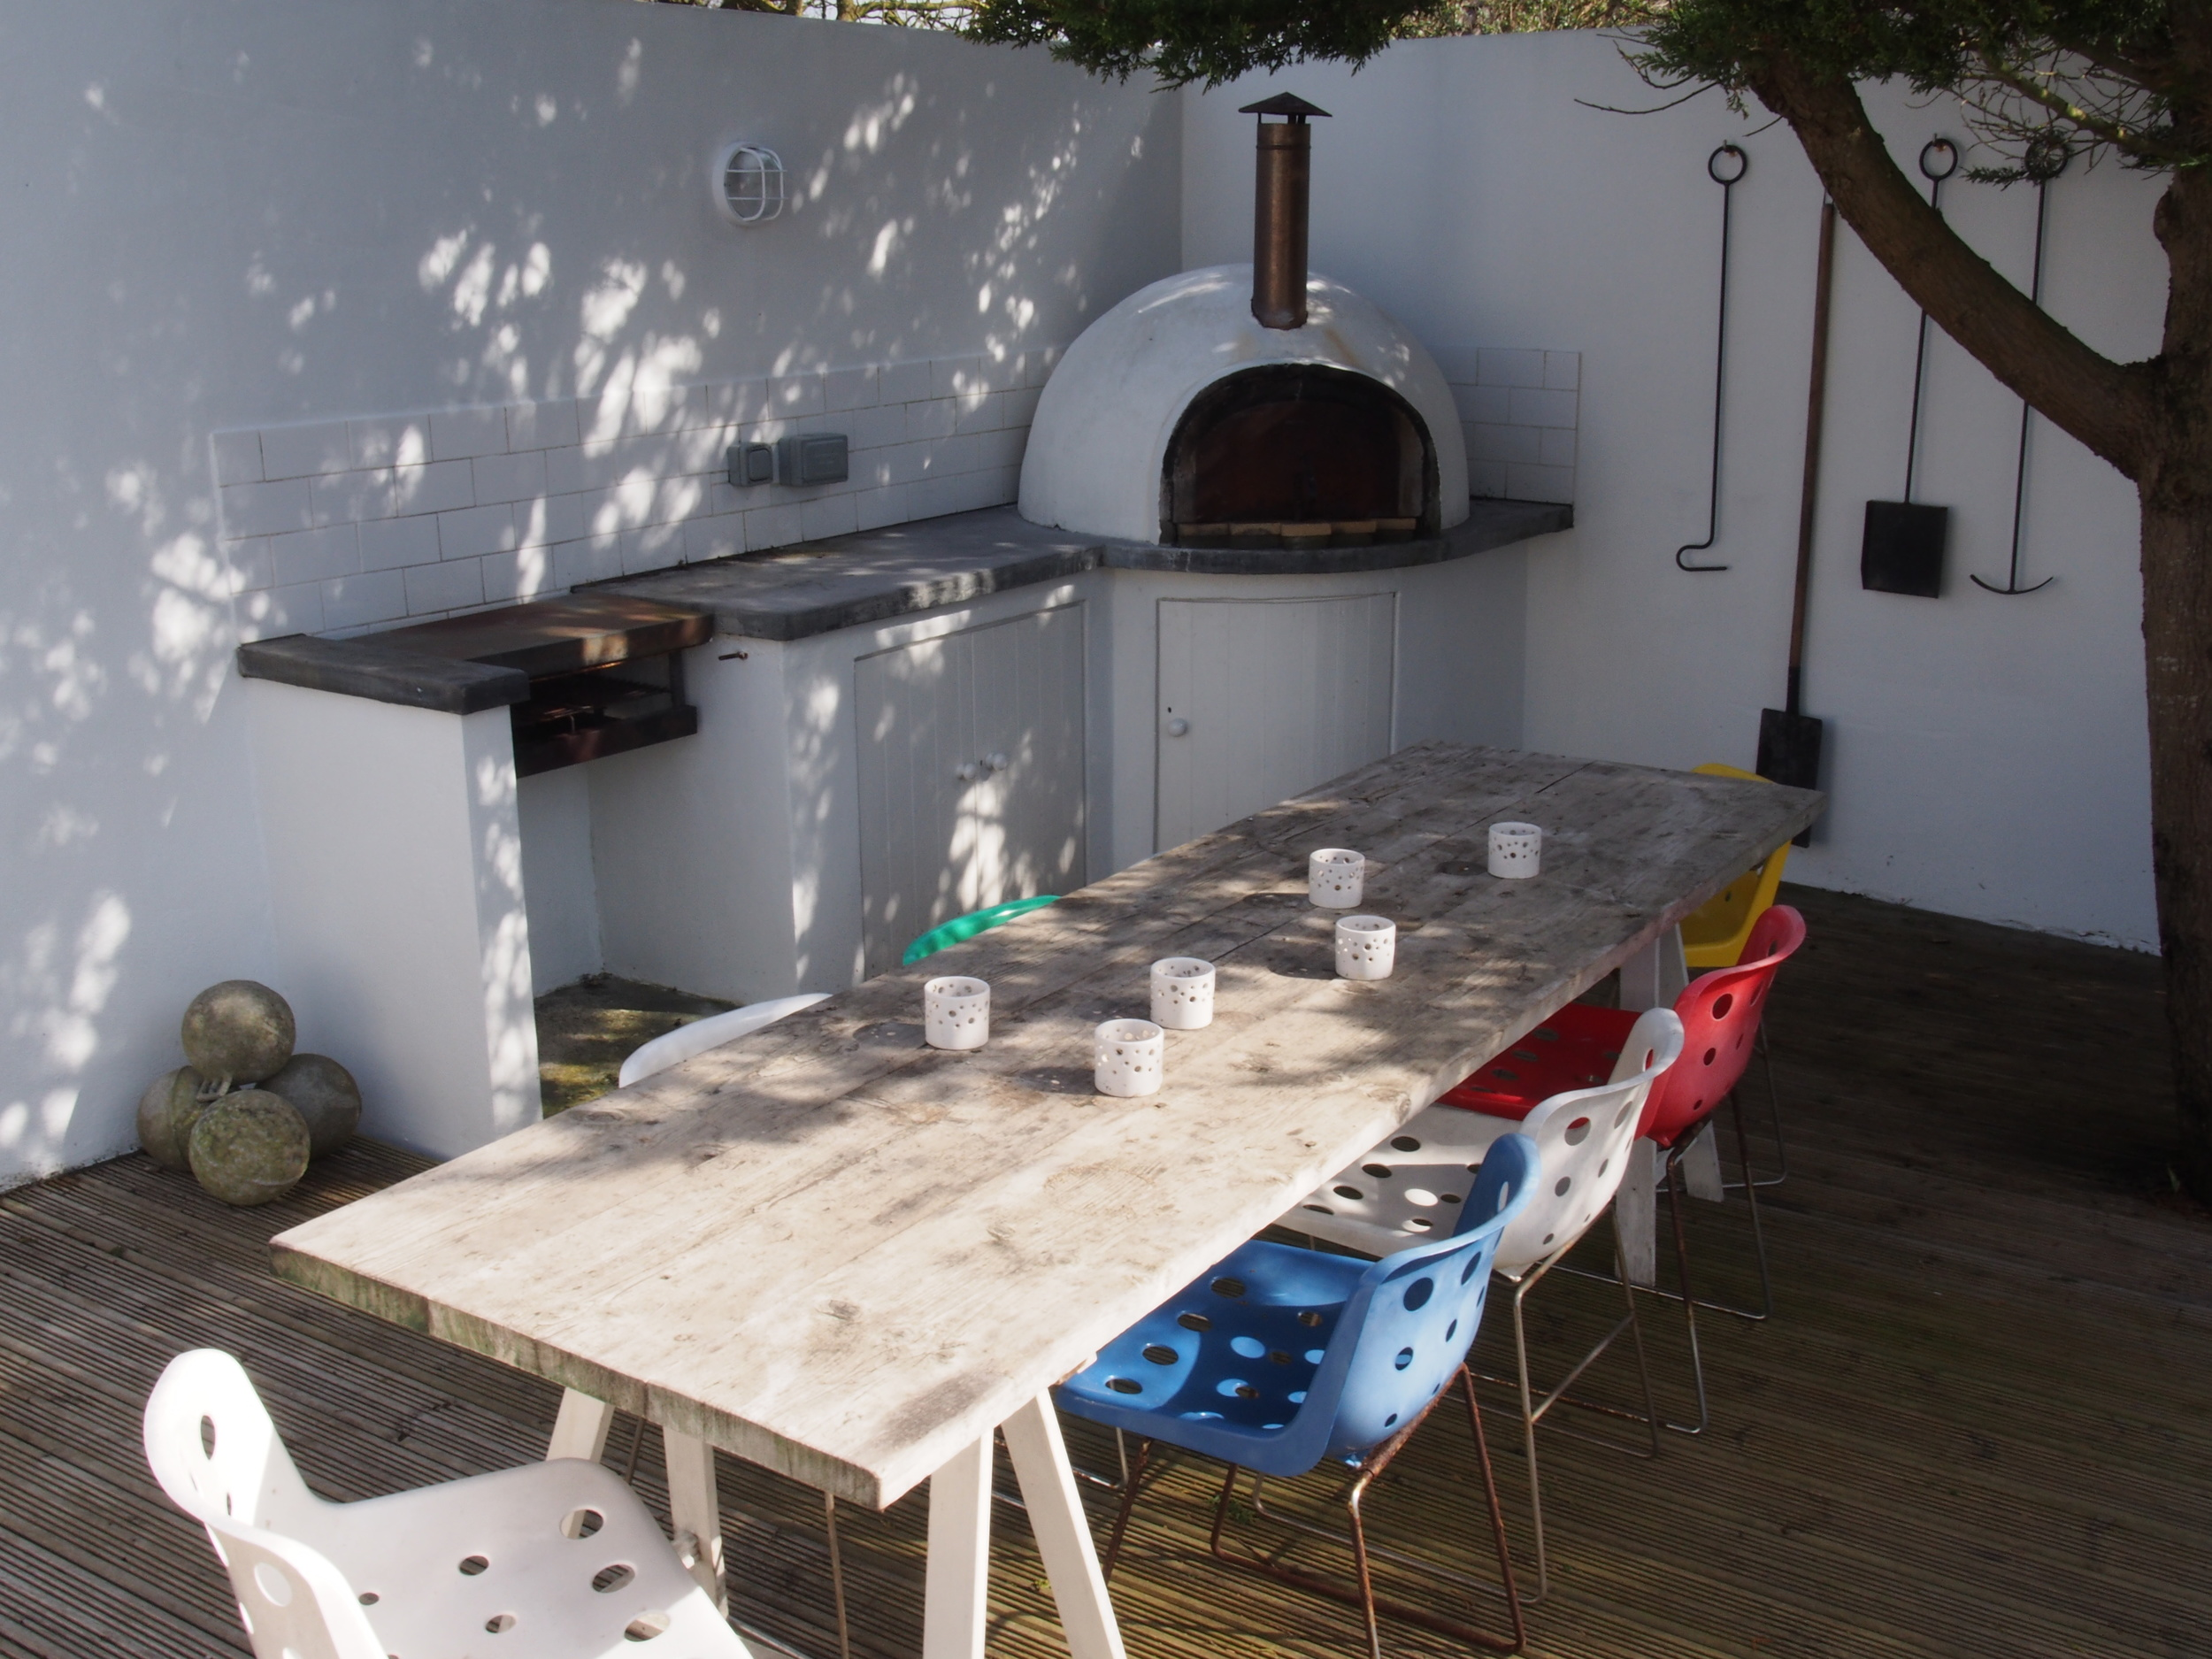 Al fresco dining with wood fired pizza oven